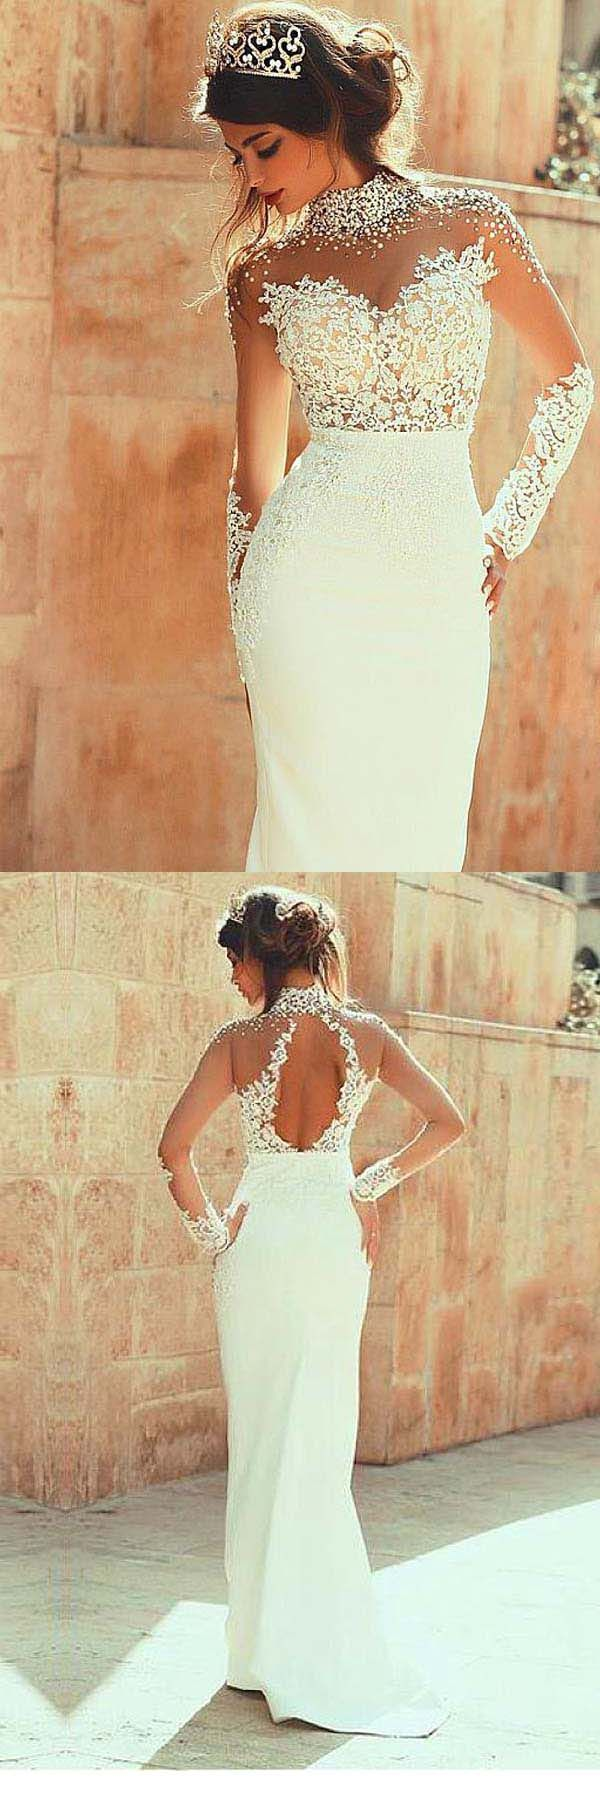 High Neckline Sheath Wedding Dresses With Beaded Lace Appliques WD191 #wedding #dress #mermaid #2018weddingdress #merimaiddress #pgmdress